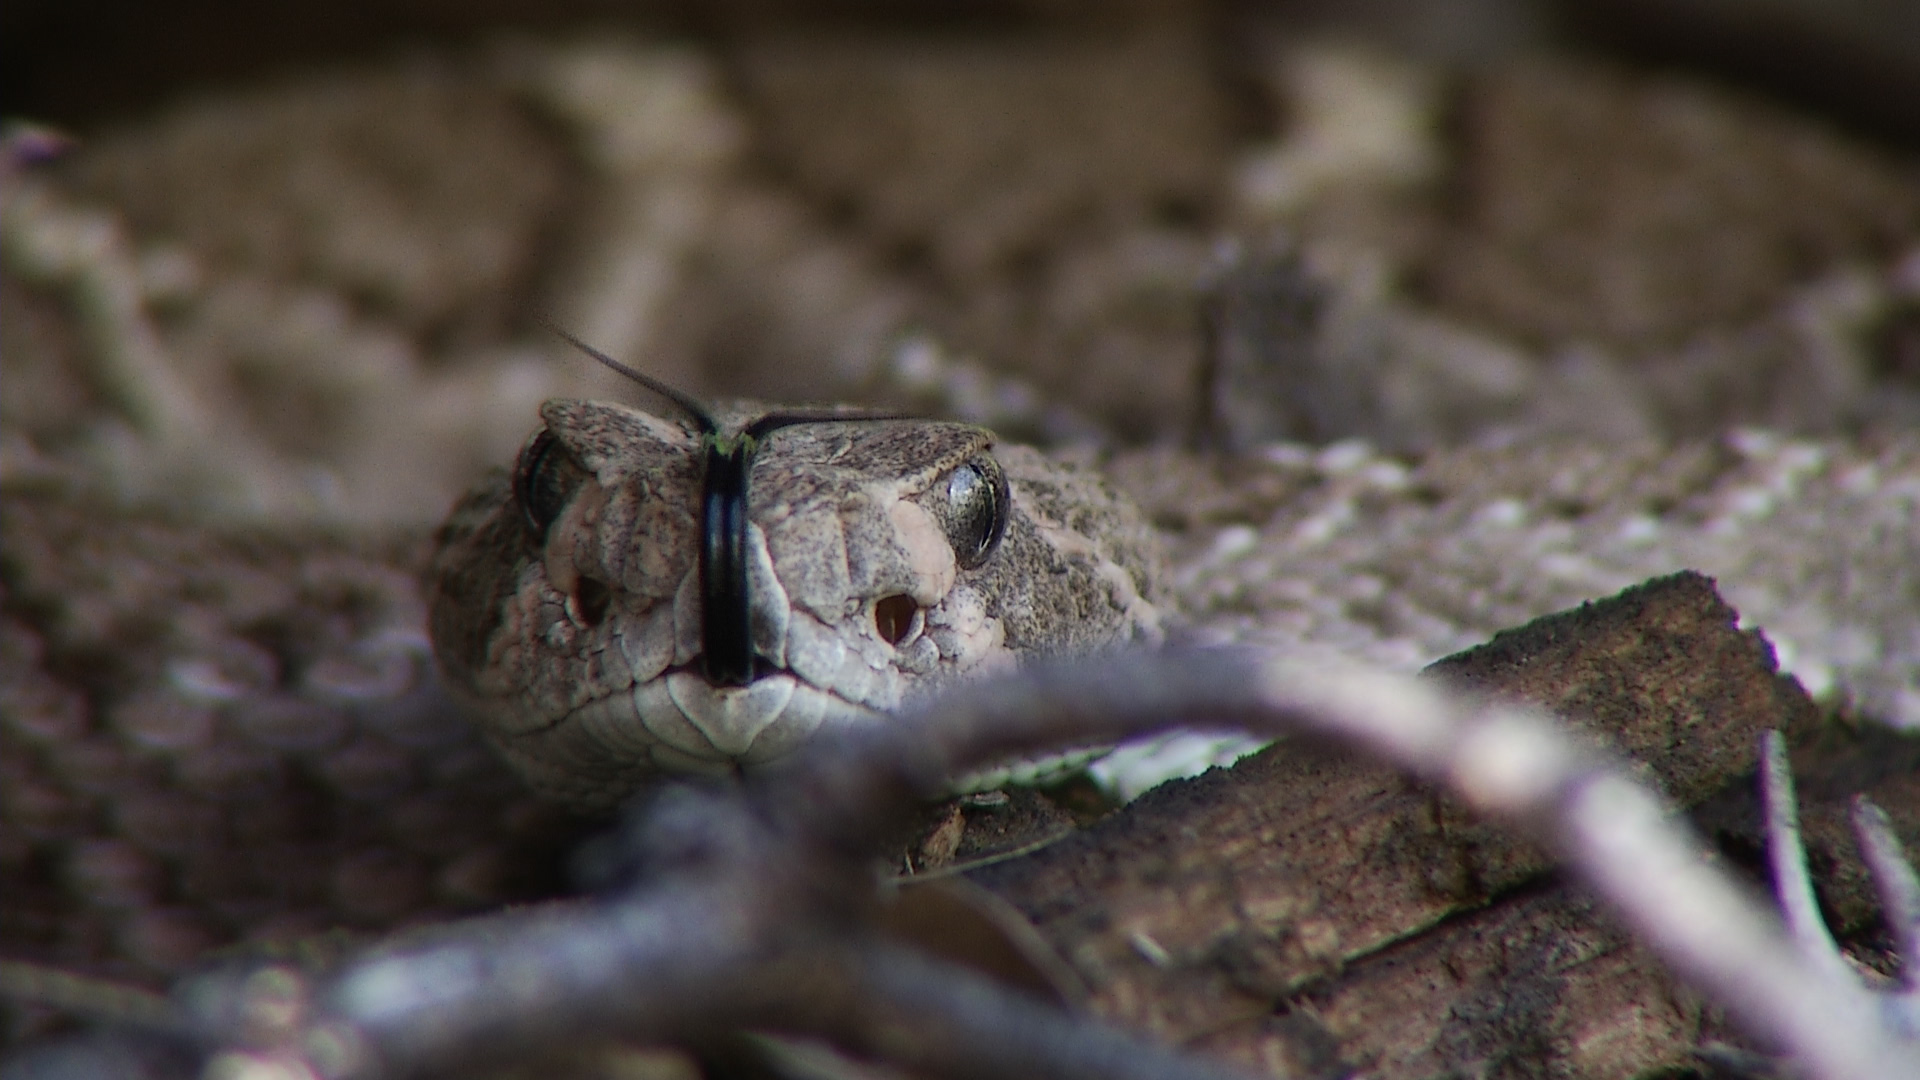 A diamondback rattlesnake flicks its tongue.